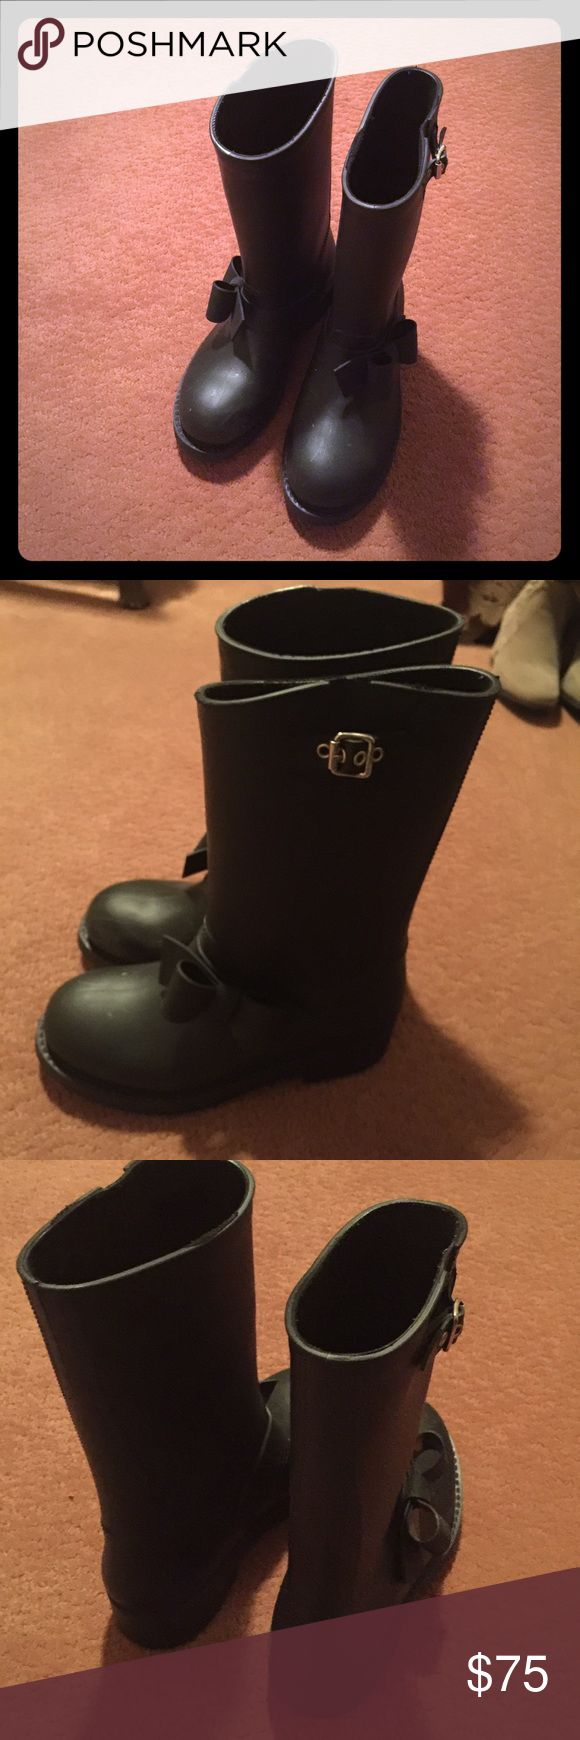 Black red Valentino bow rain boots 100% authentic These black bow red Valentino rain boots have been worn a few times in good condition has some scratches in the front they need a new home no box 100% authentic RED Valentino Shoes Winter & Rain Boots